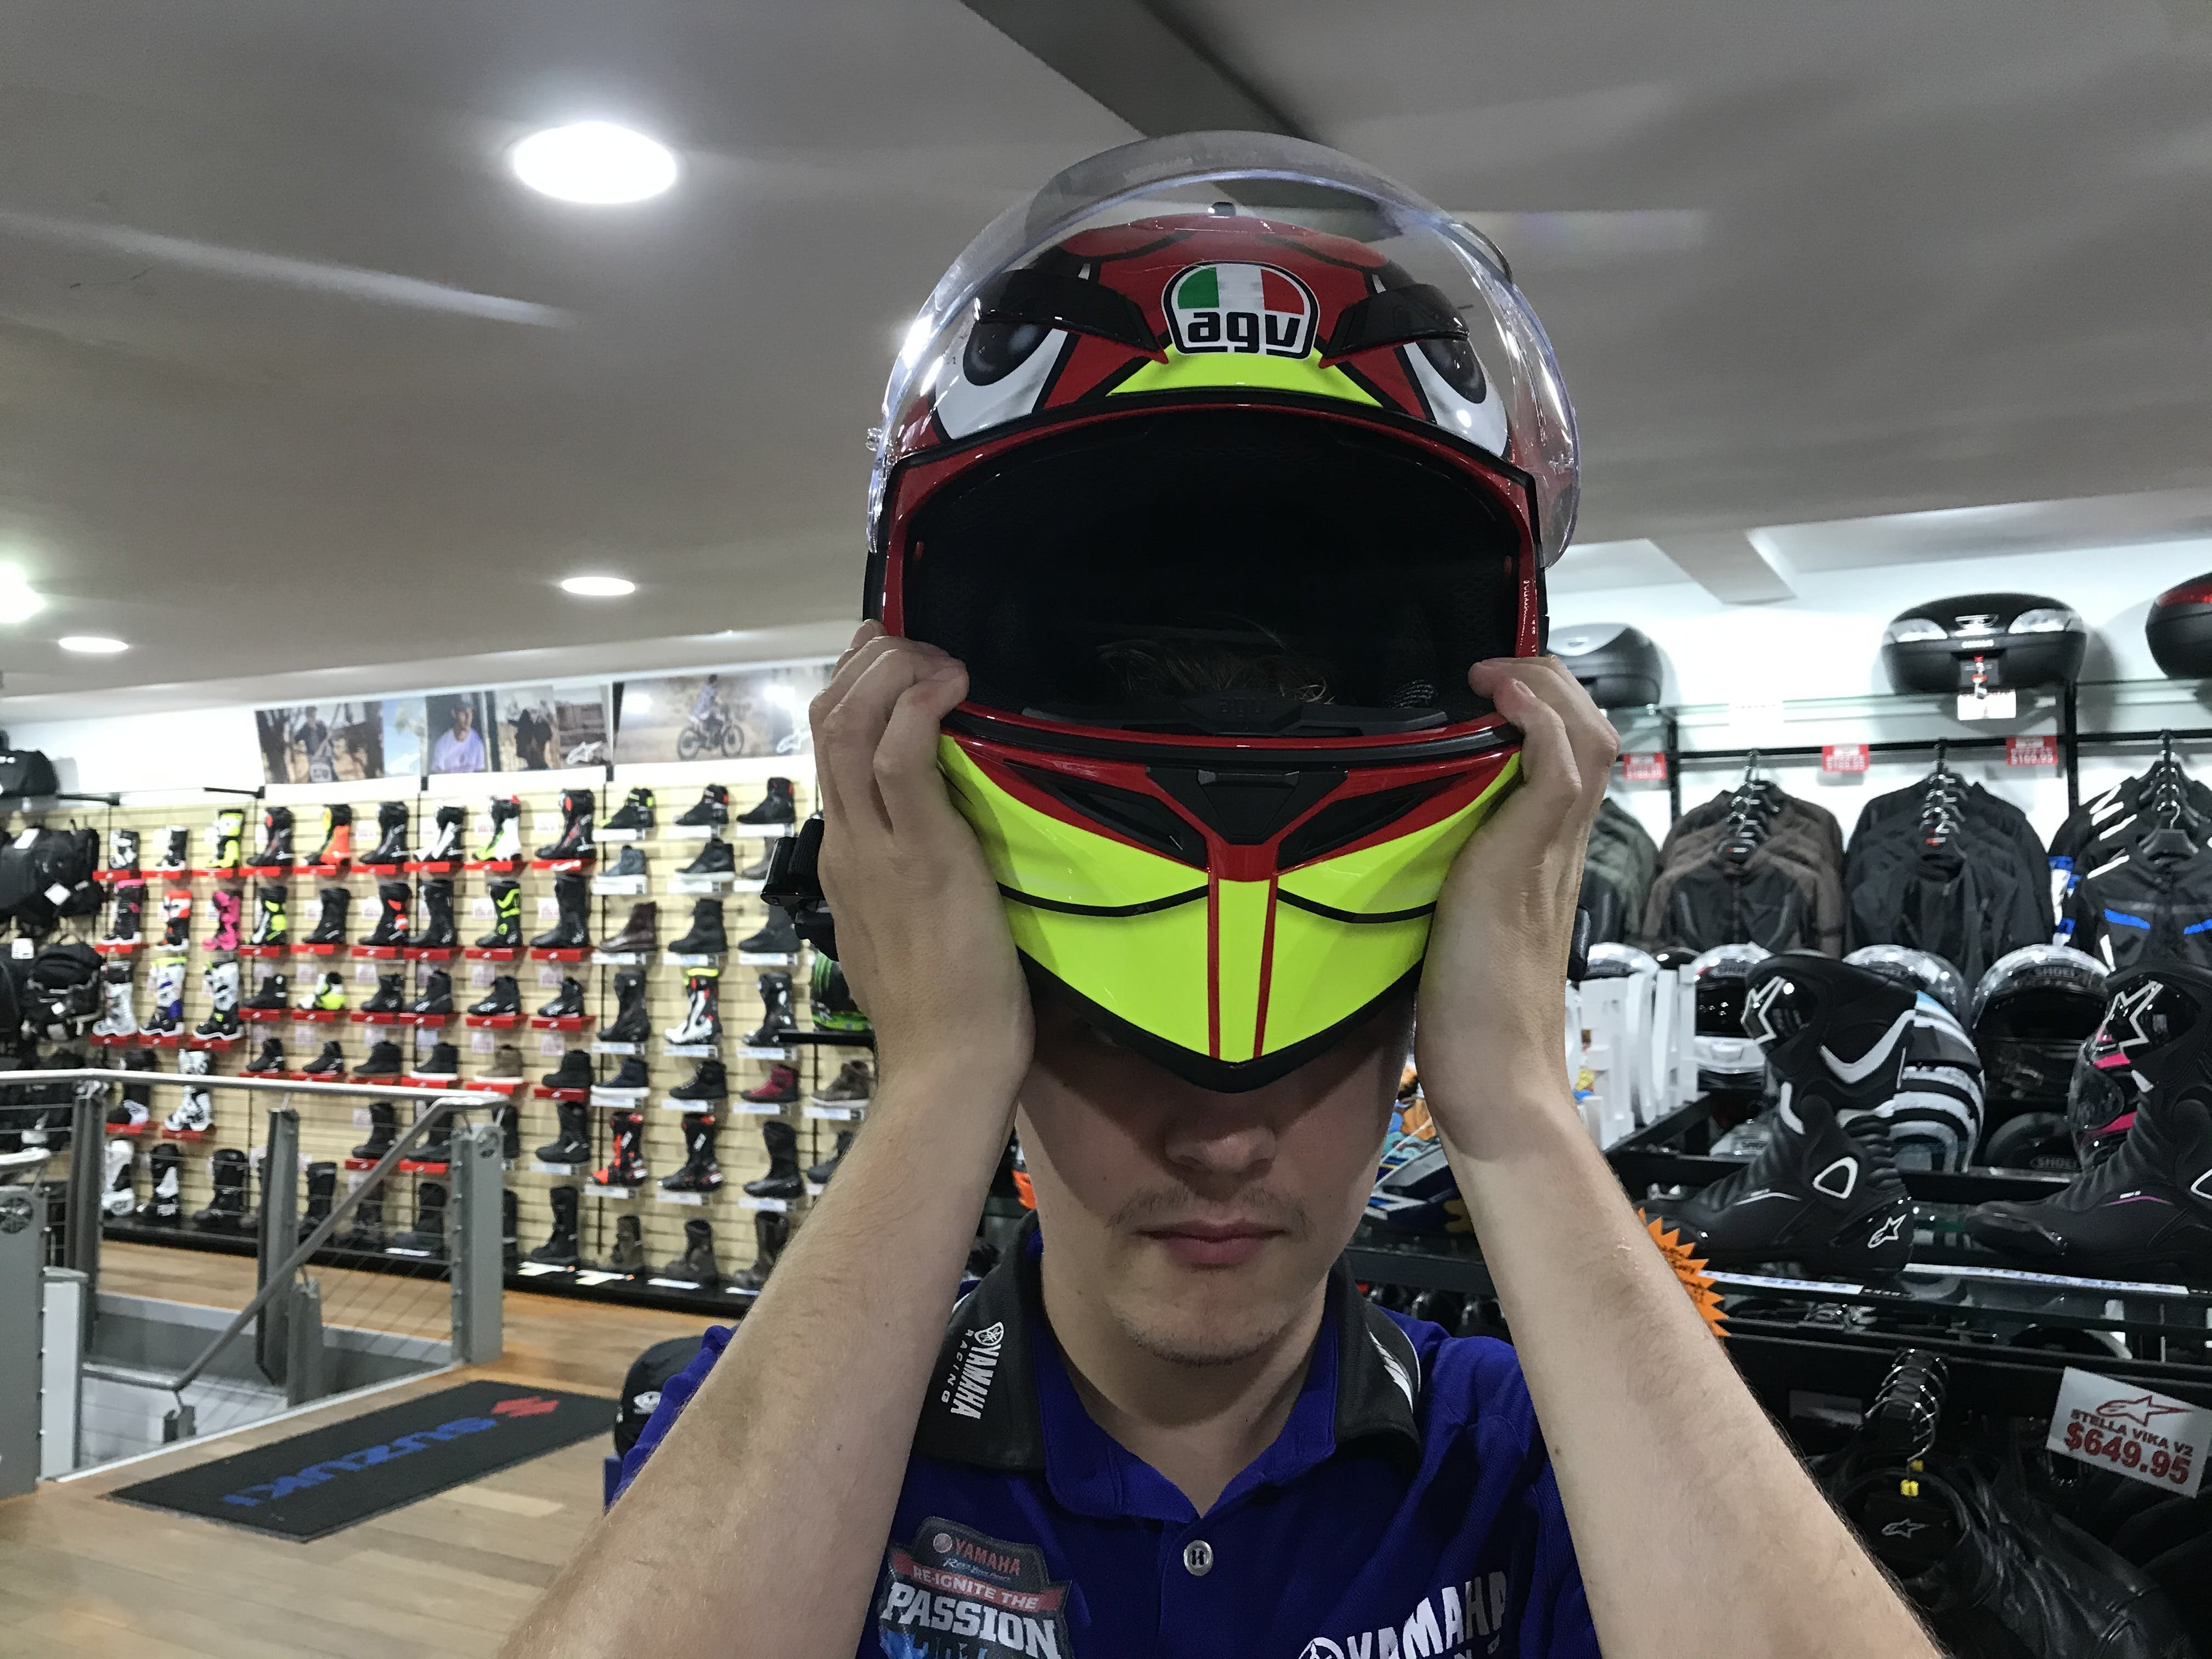 Guy putting on a red and yellow motorcycle helmet